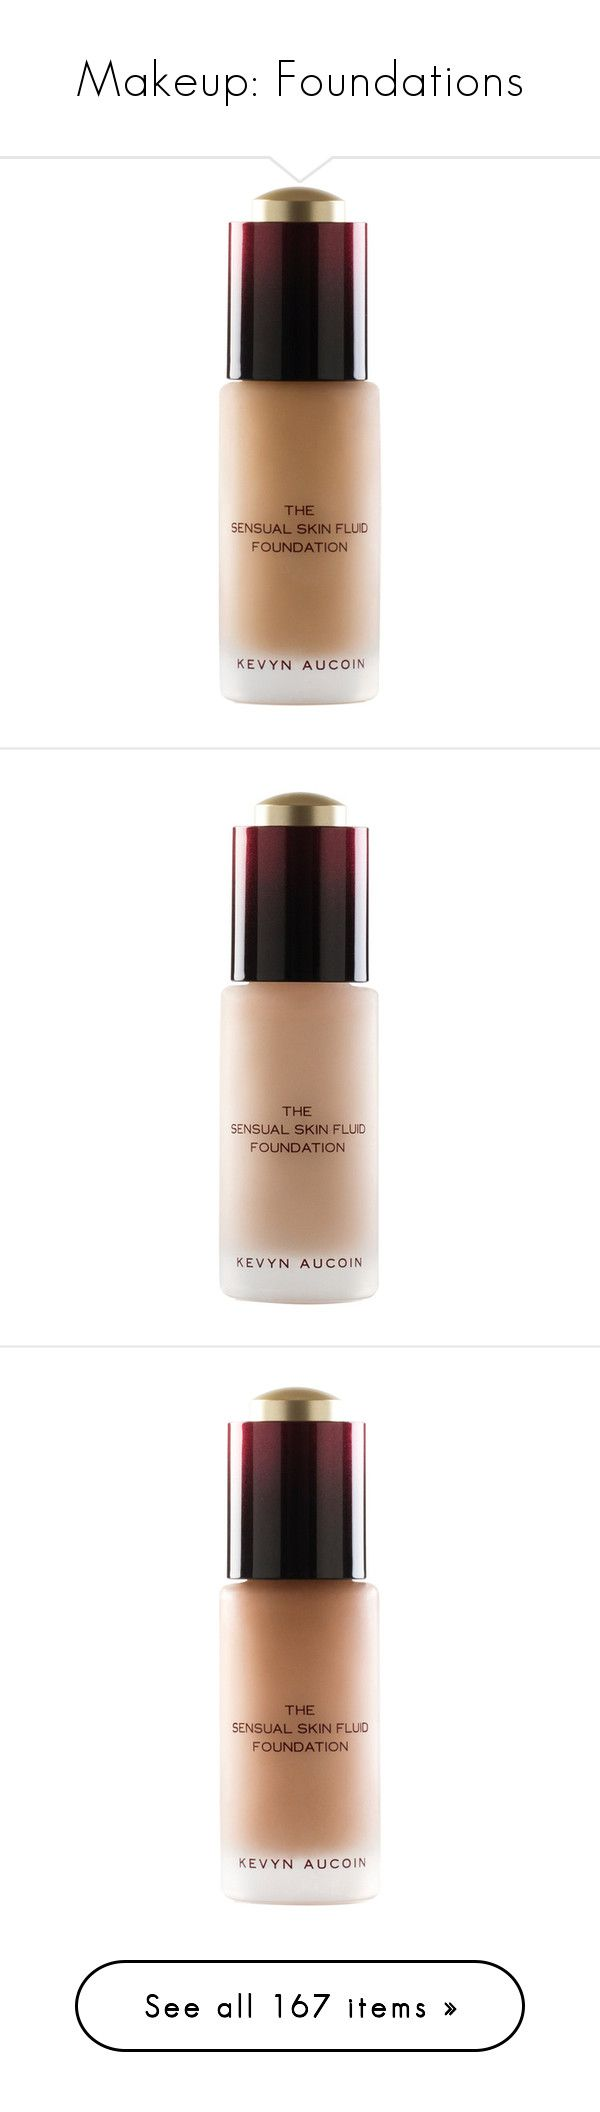 """""""Makeup: Foundations"""" by katiasitems on Polyvore featuring beauty products, makeup, face makeup, foundation, cream, paraben-free foundation, oil free foundation, anti aging foundation, oil free paraben free foundation and long wear foundation"""